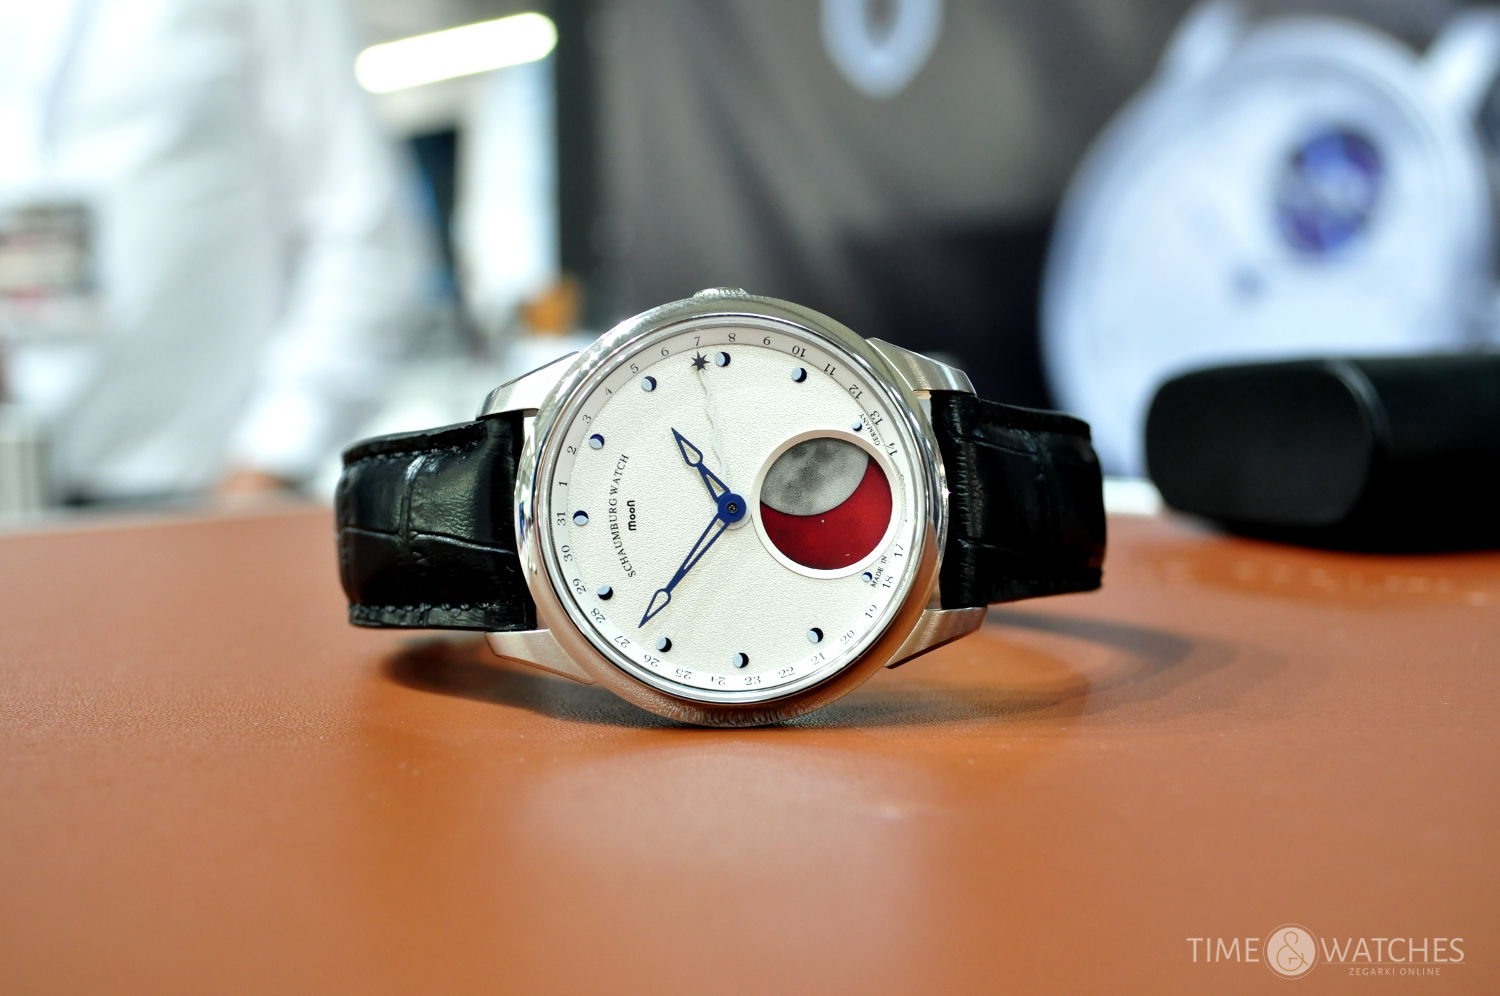 Targi Passion for Watches 2017: fotorelacja!  | Timeandwatches.pl